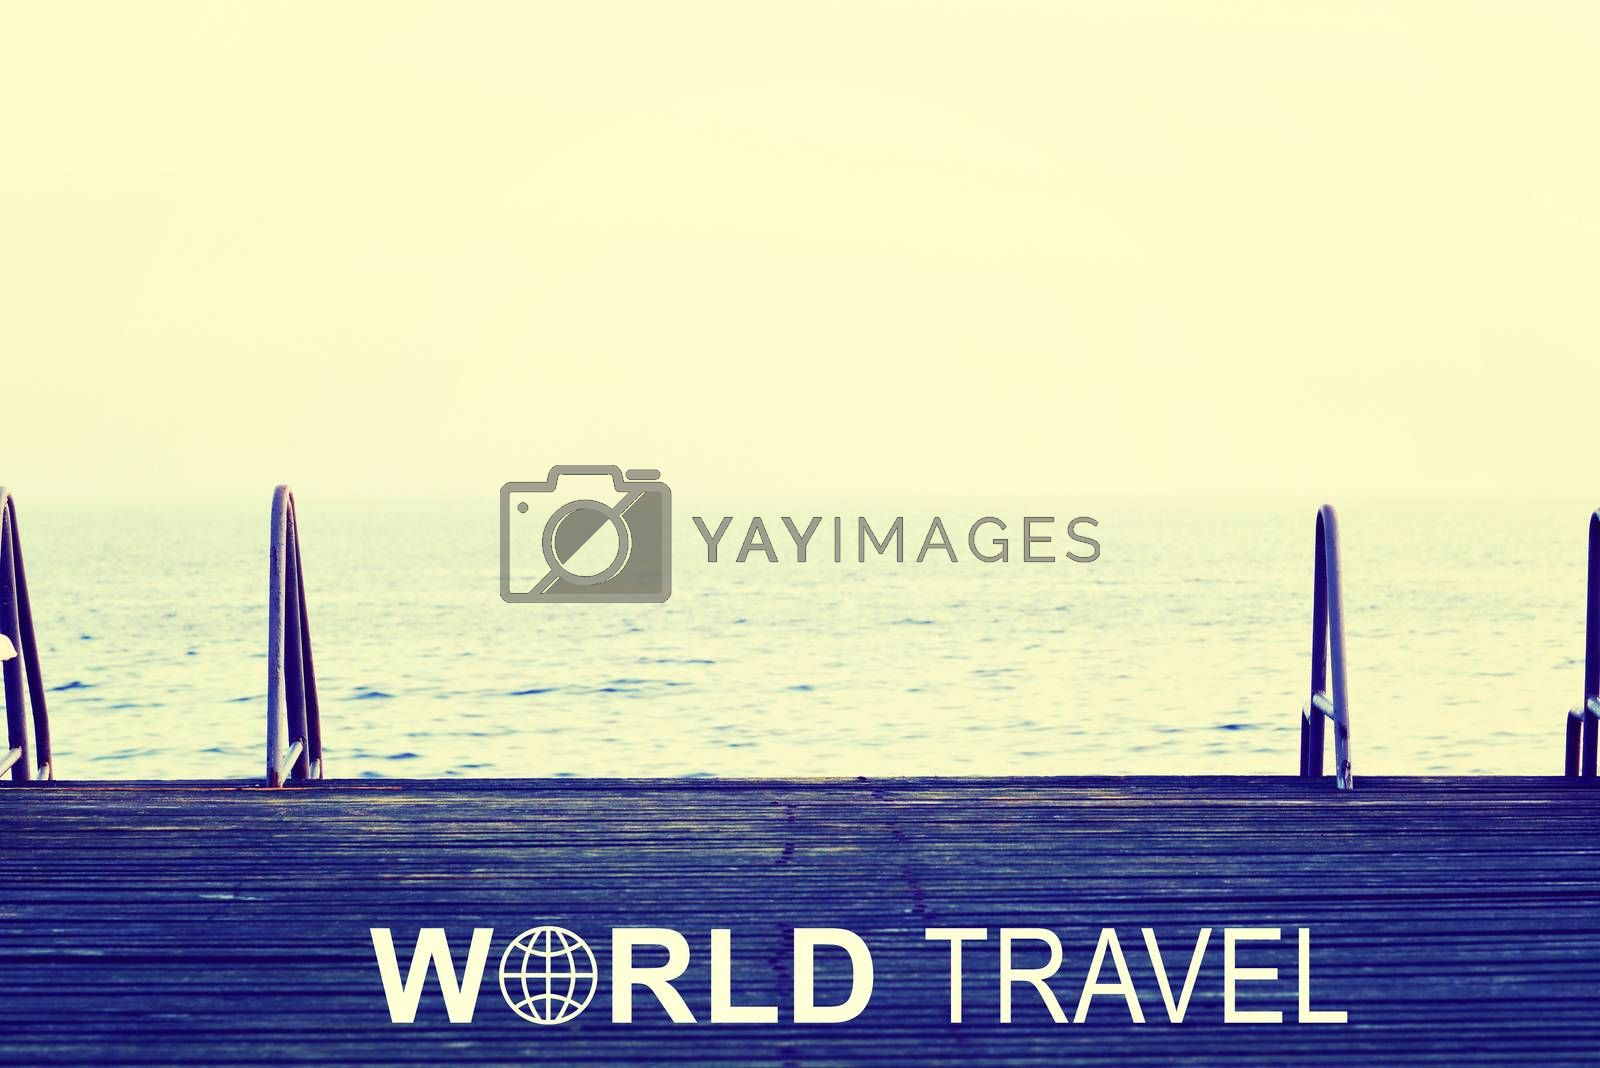 Footbridge witn two gangway ladders at sea, lake or river.. Iinscription World Travel and related symbol